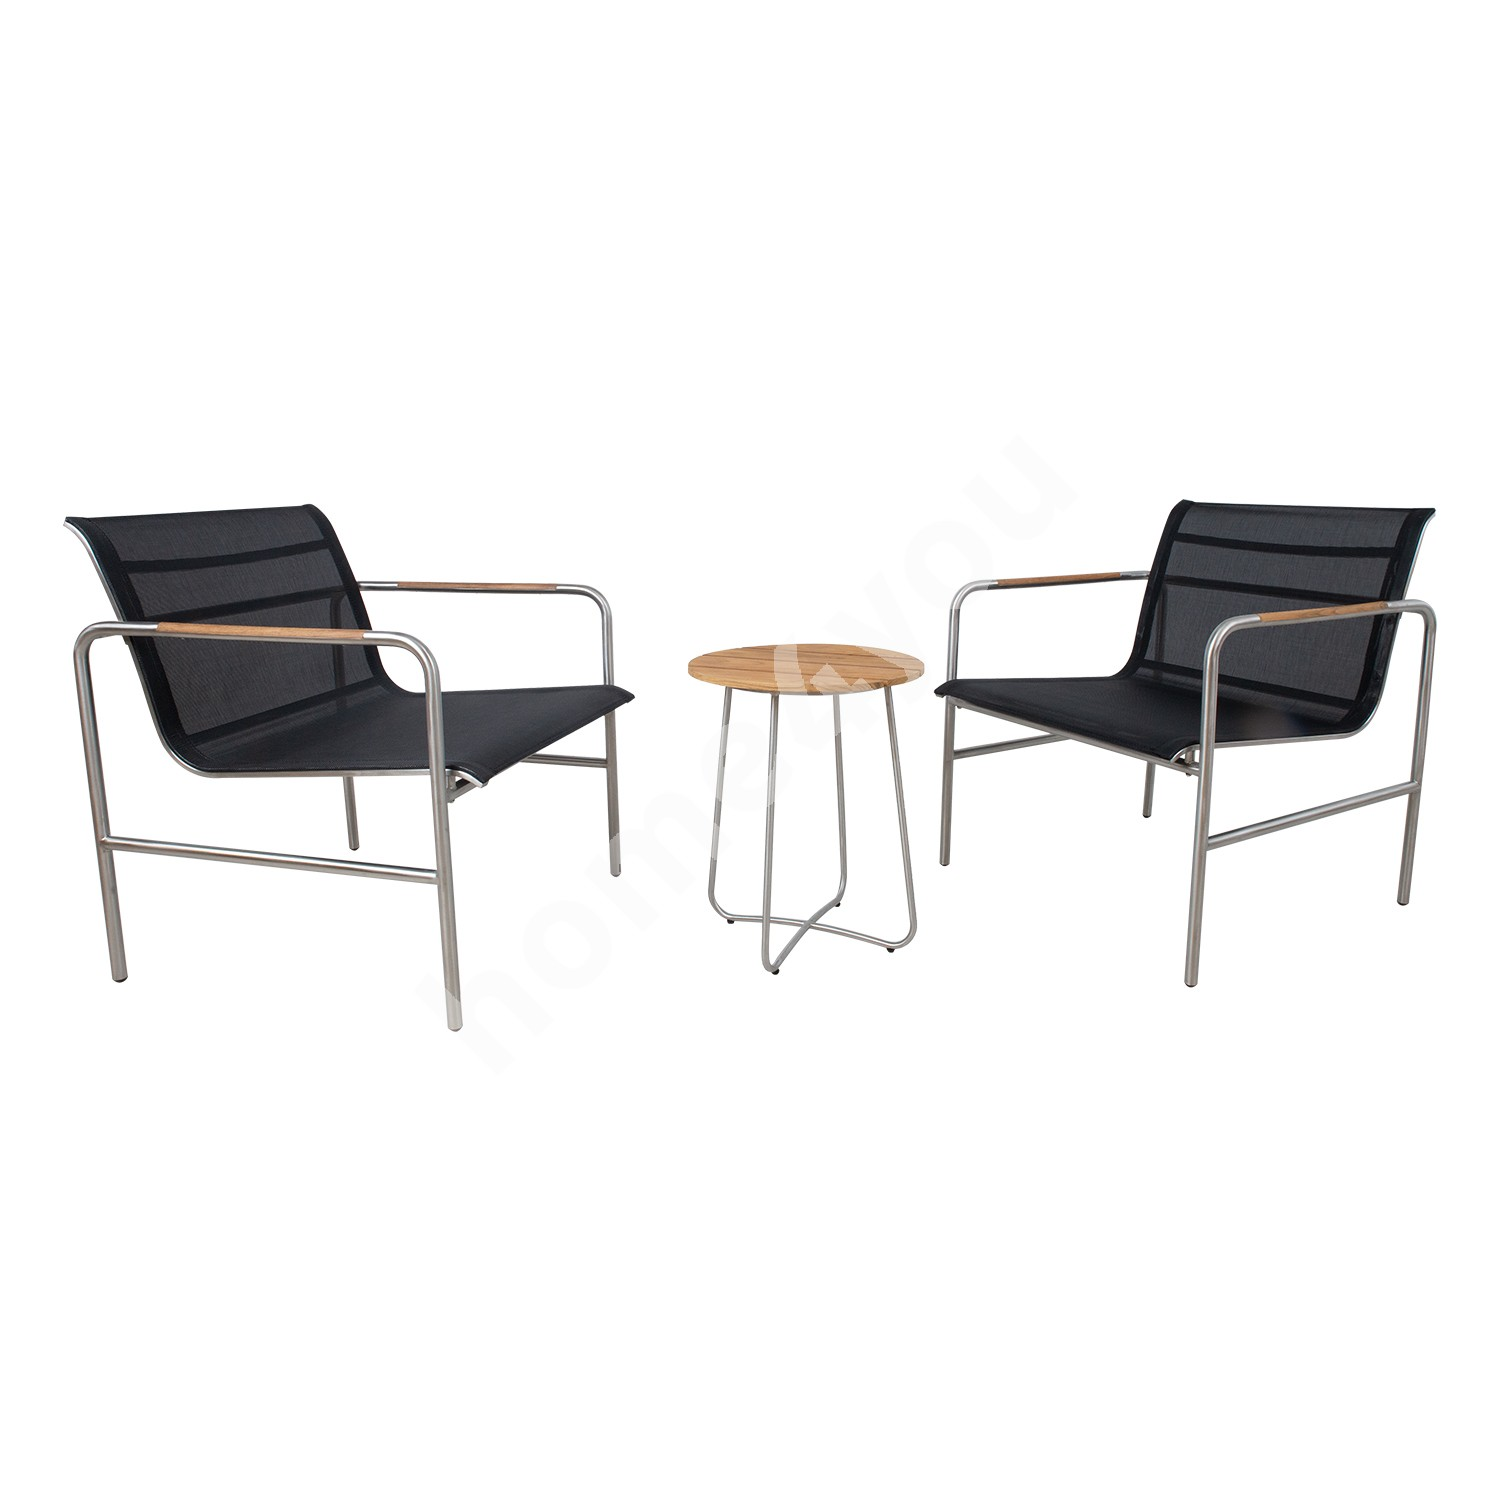 Balcony set TELA table and 2 chairs